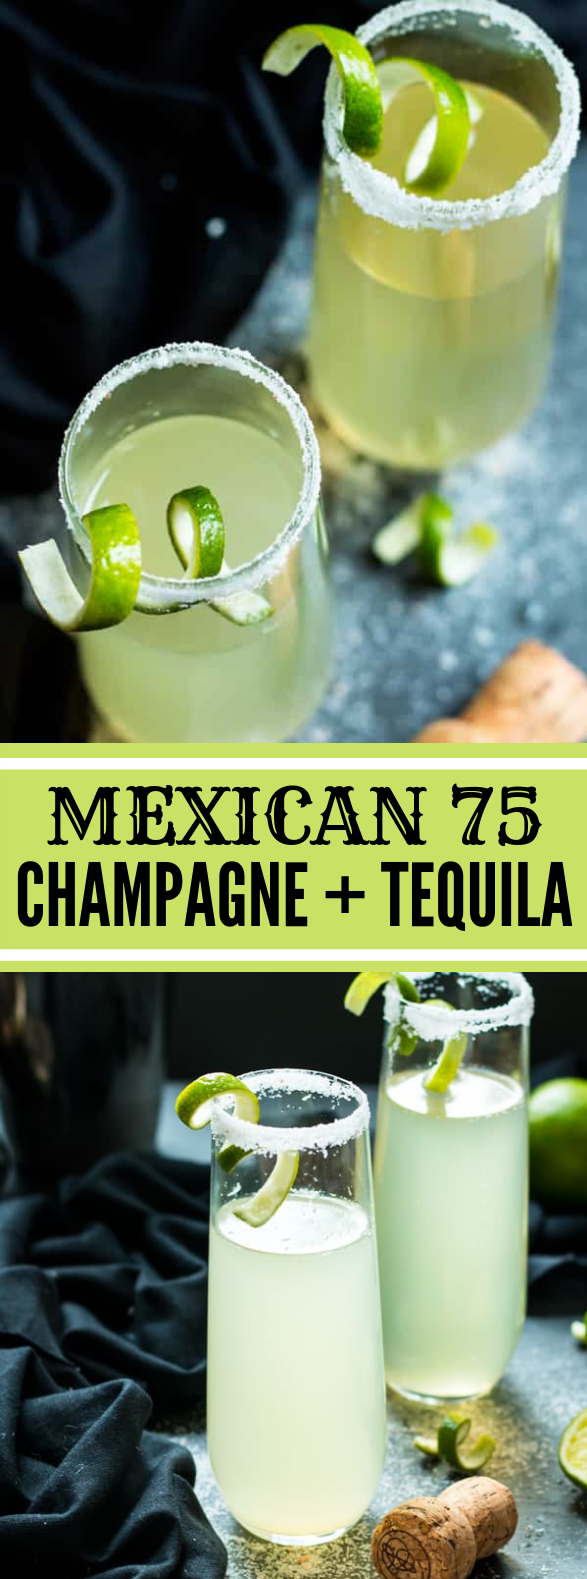 MEXICAN 75 – A TEQUILA AND CHAMPAGNE COCKTAIL #drinks #celebration